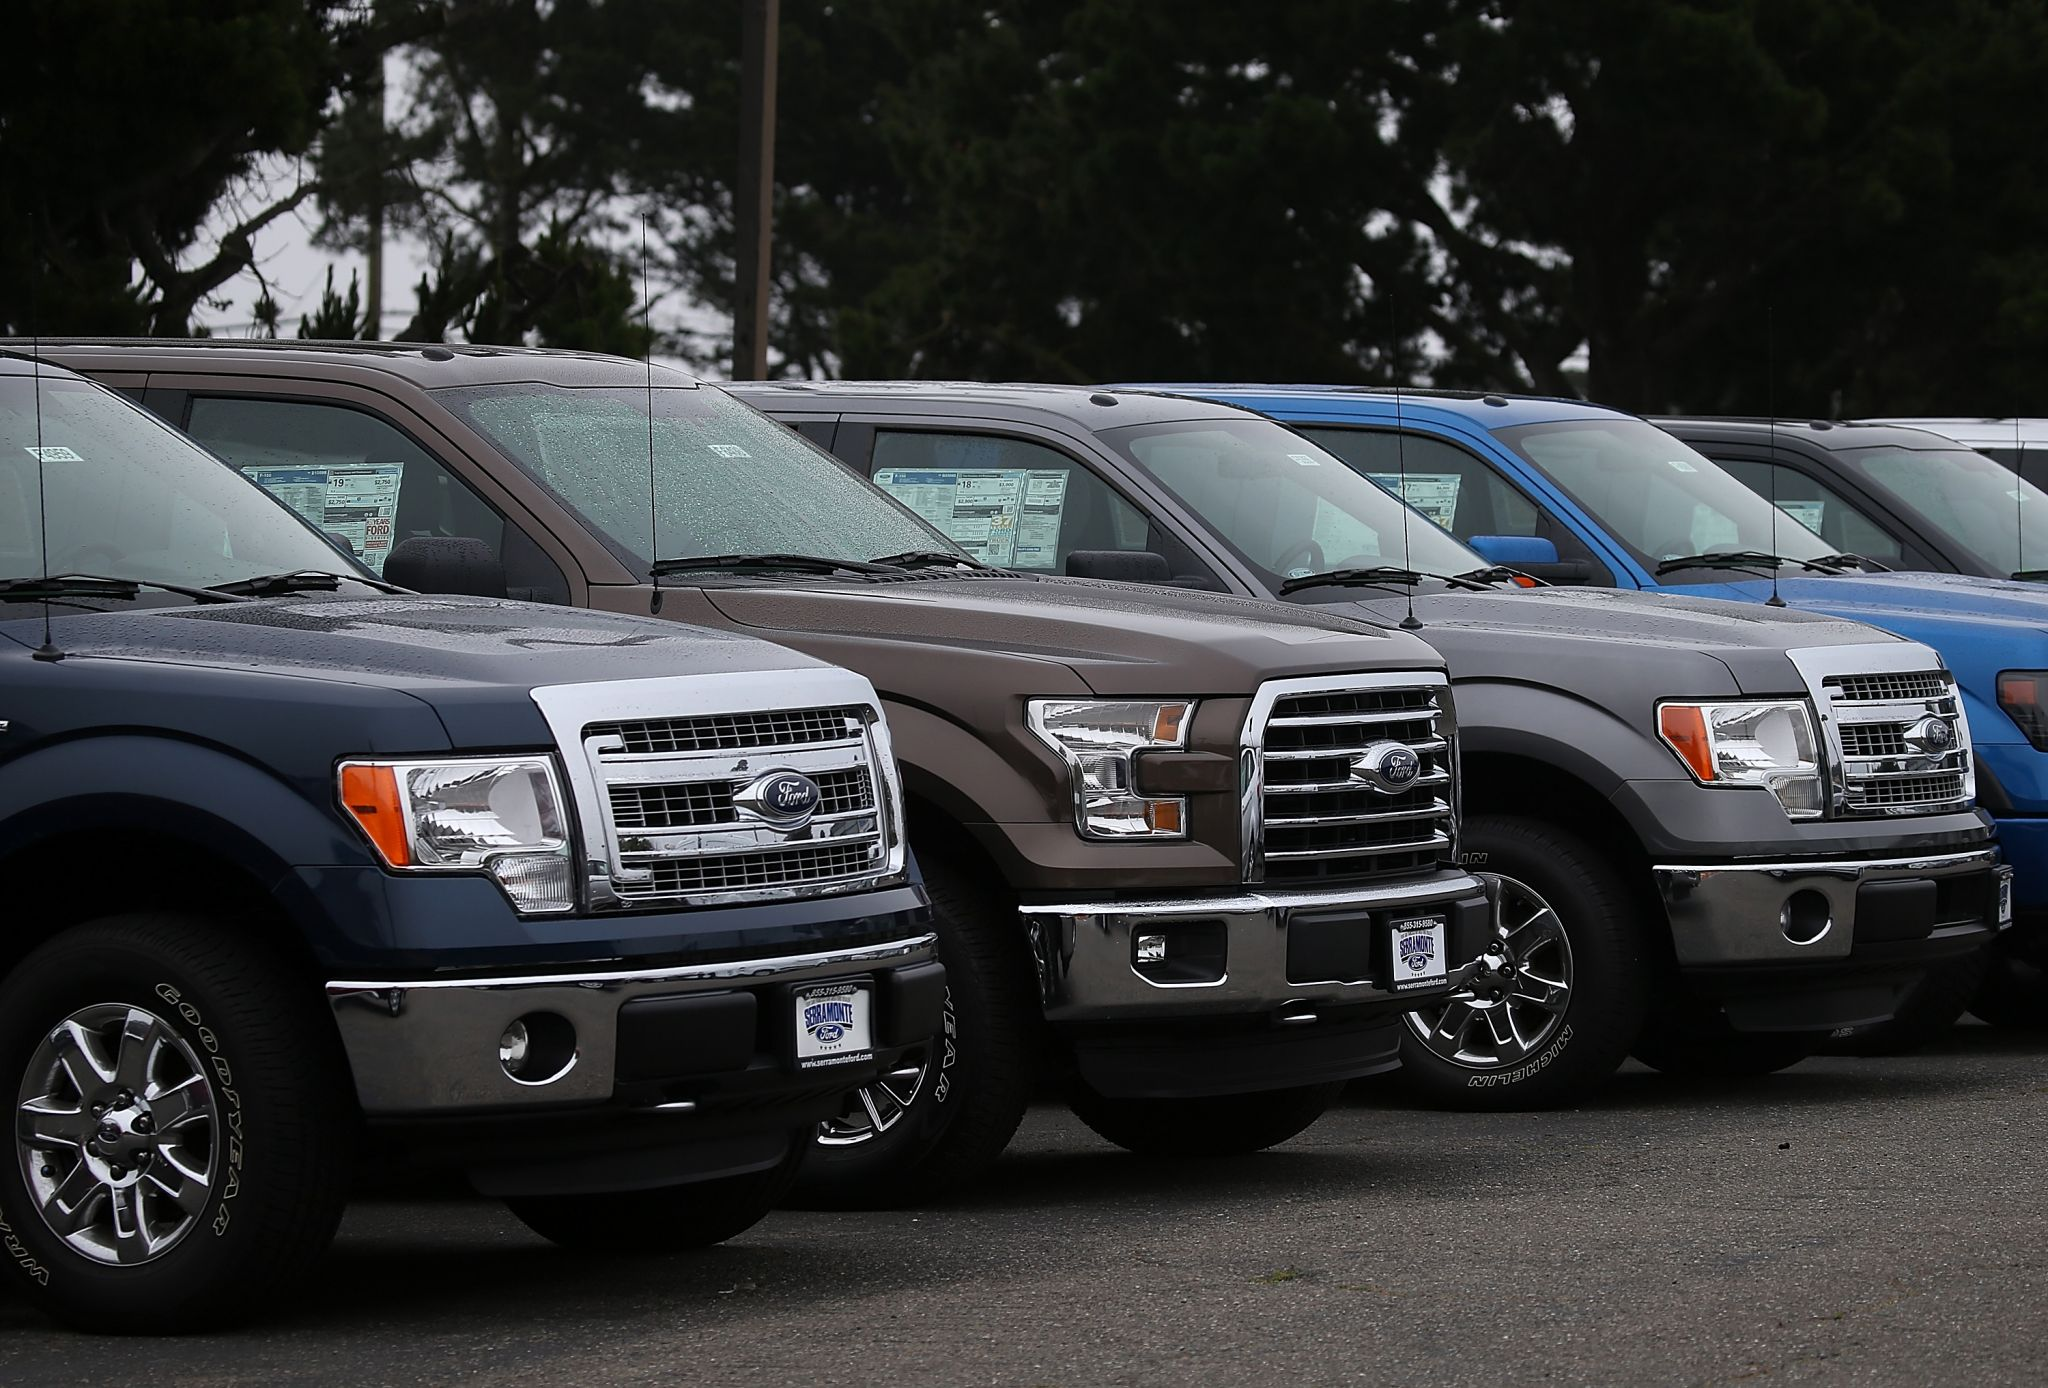 If your neighborhood is full of pickup trucks you might be a Trump